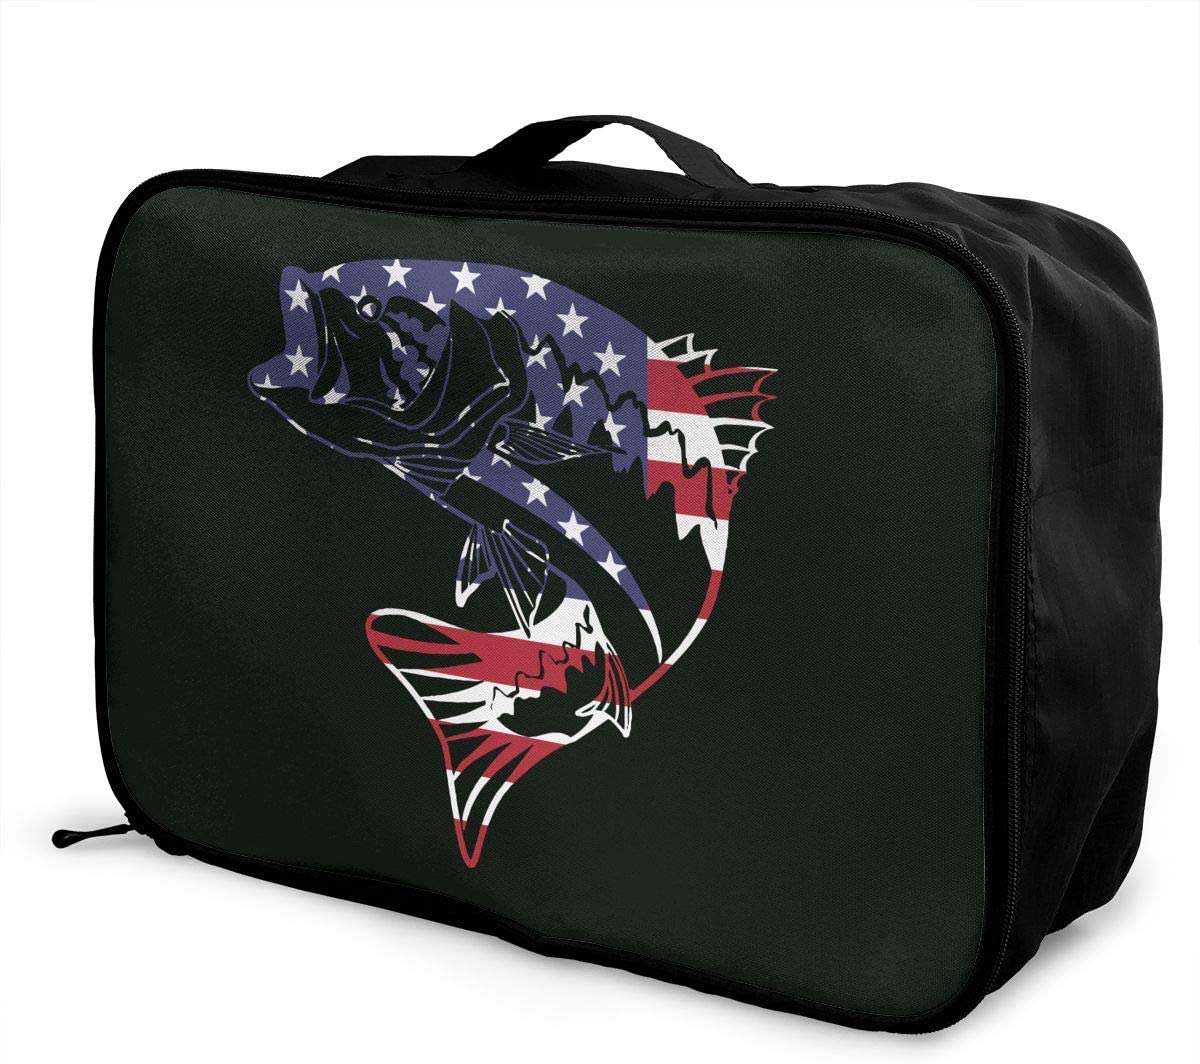 Retro American Flag /& Bass Fishing Carry Lightweight Large Capacity Portable Outdoor Luggage Trolley Bag